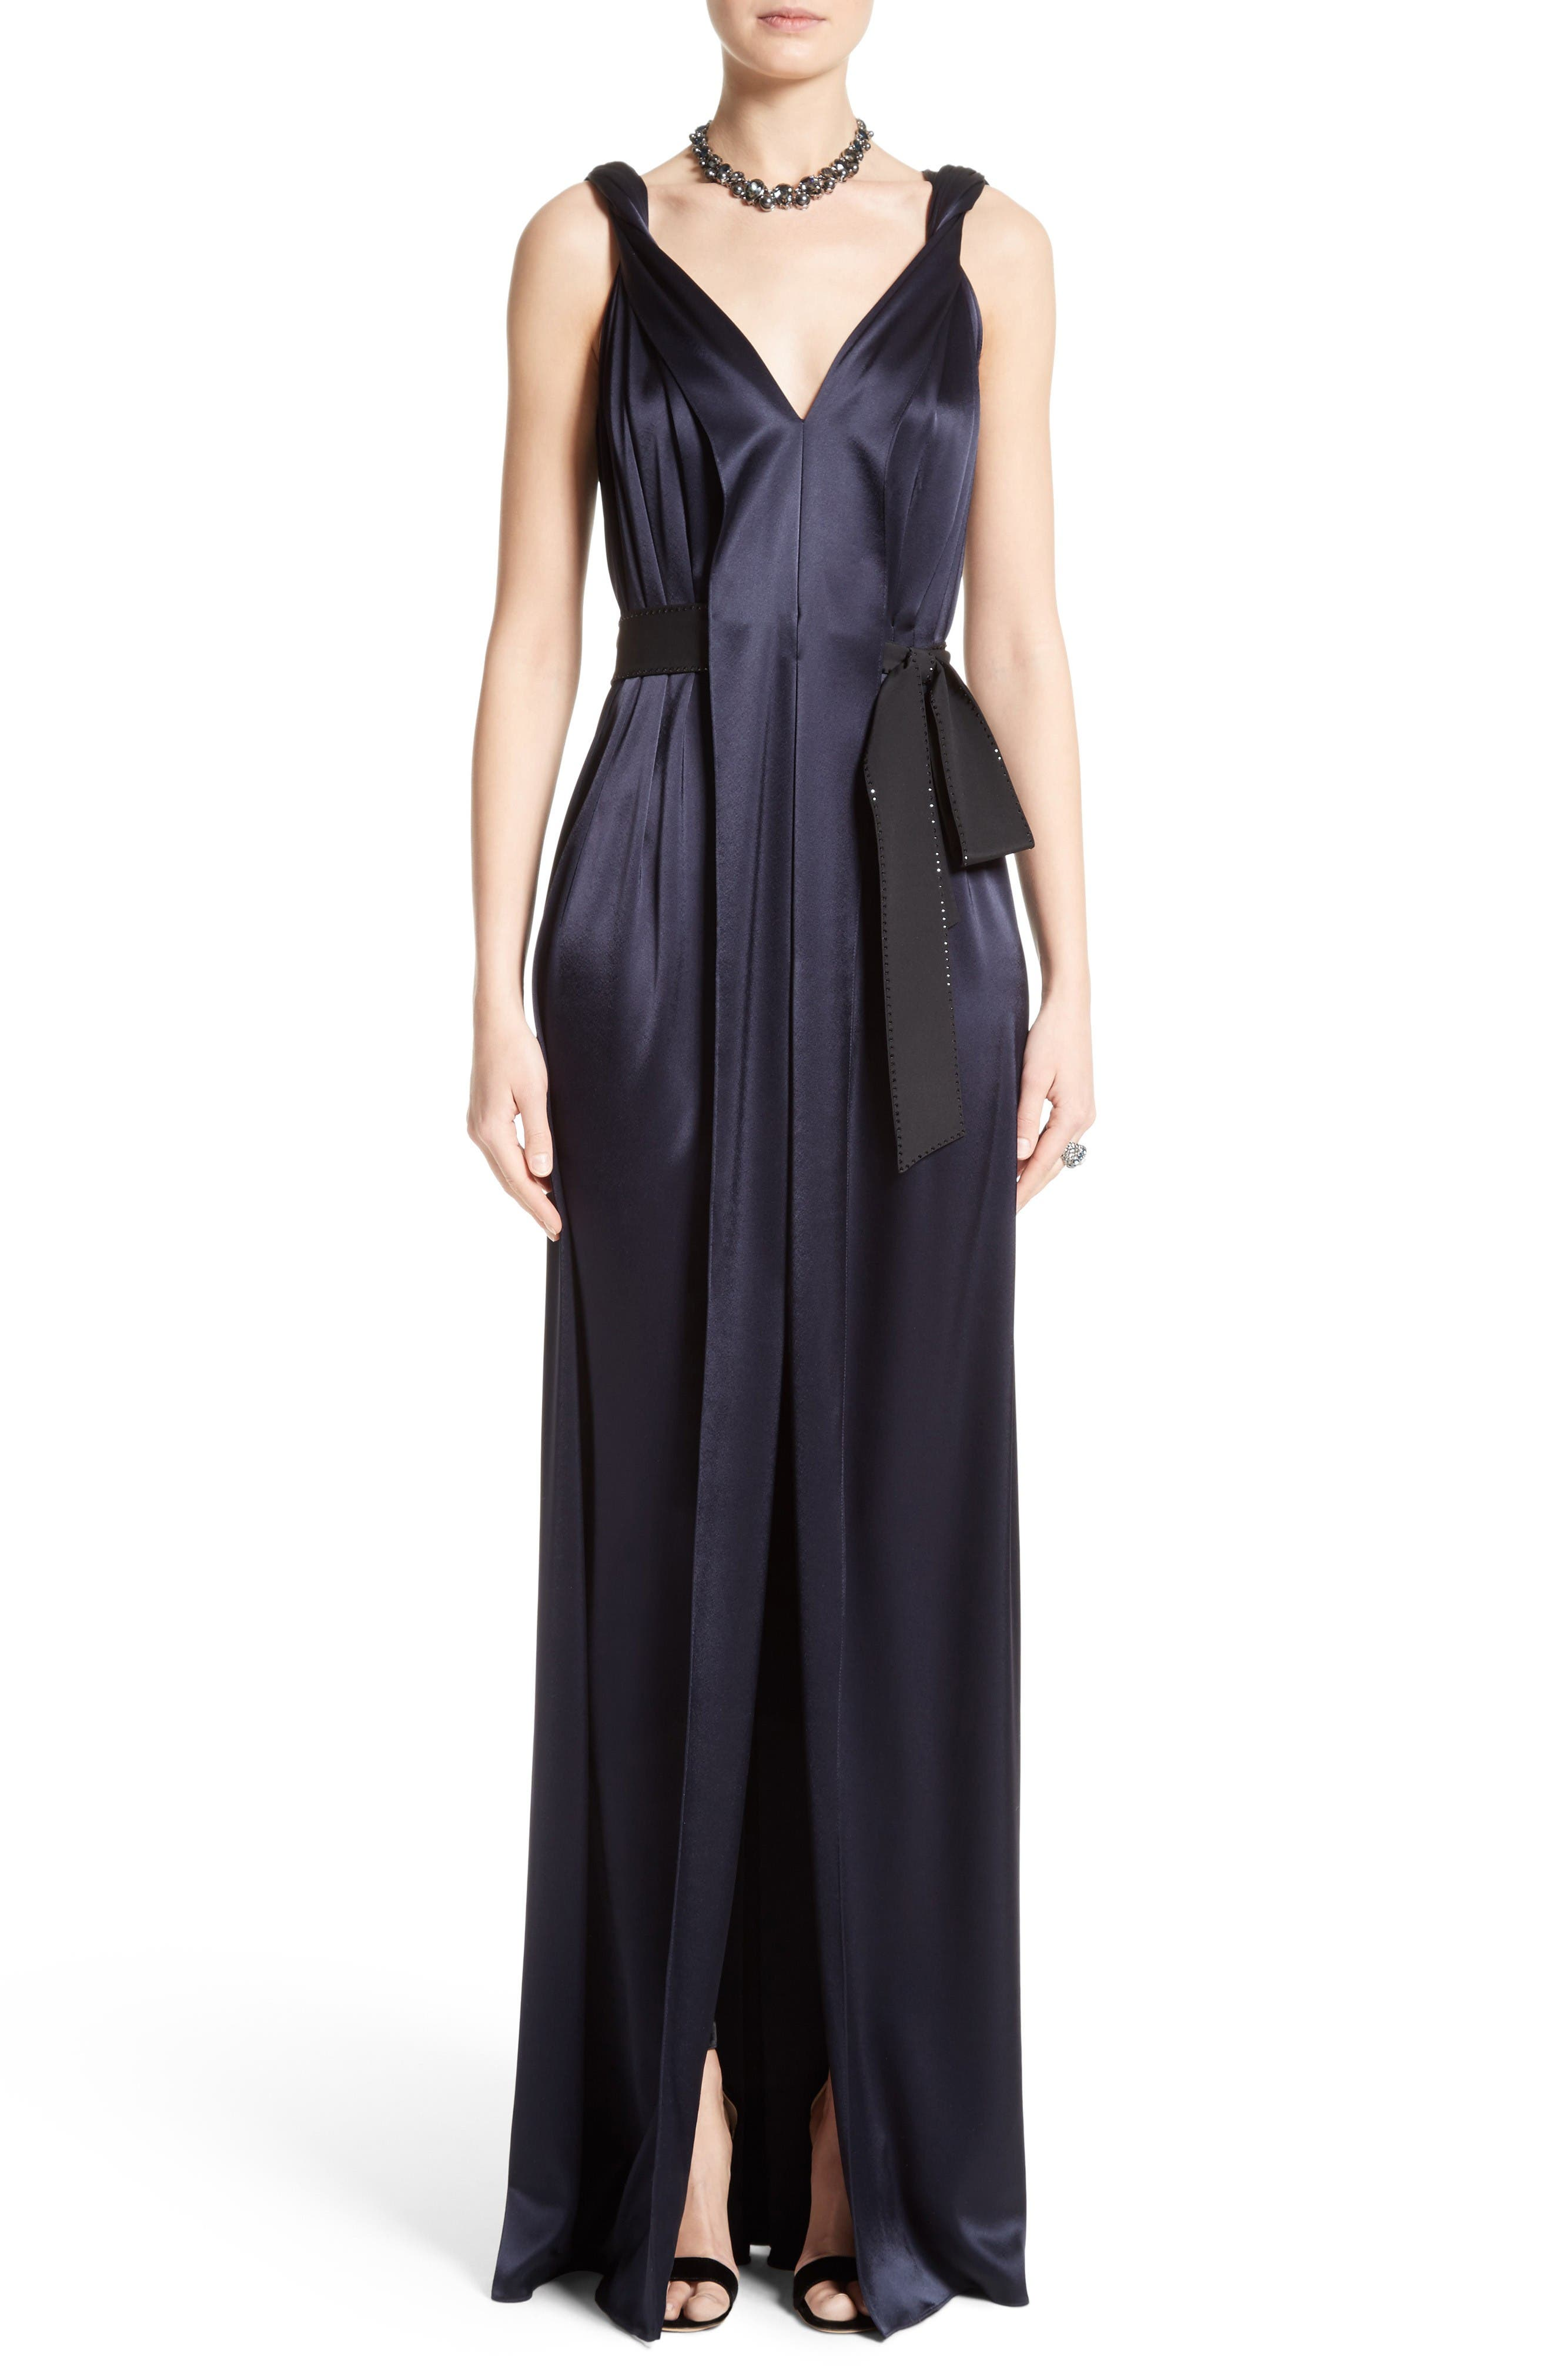 Alternate Image 1 Selected - St. John Evening Liquid Satin Gown